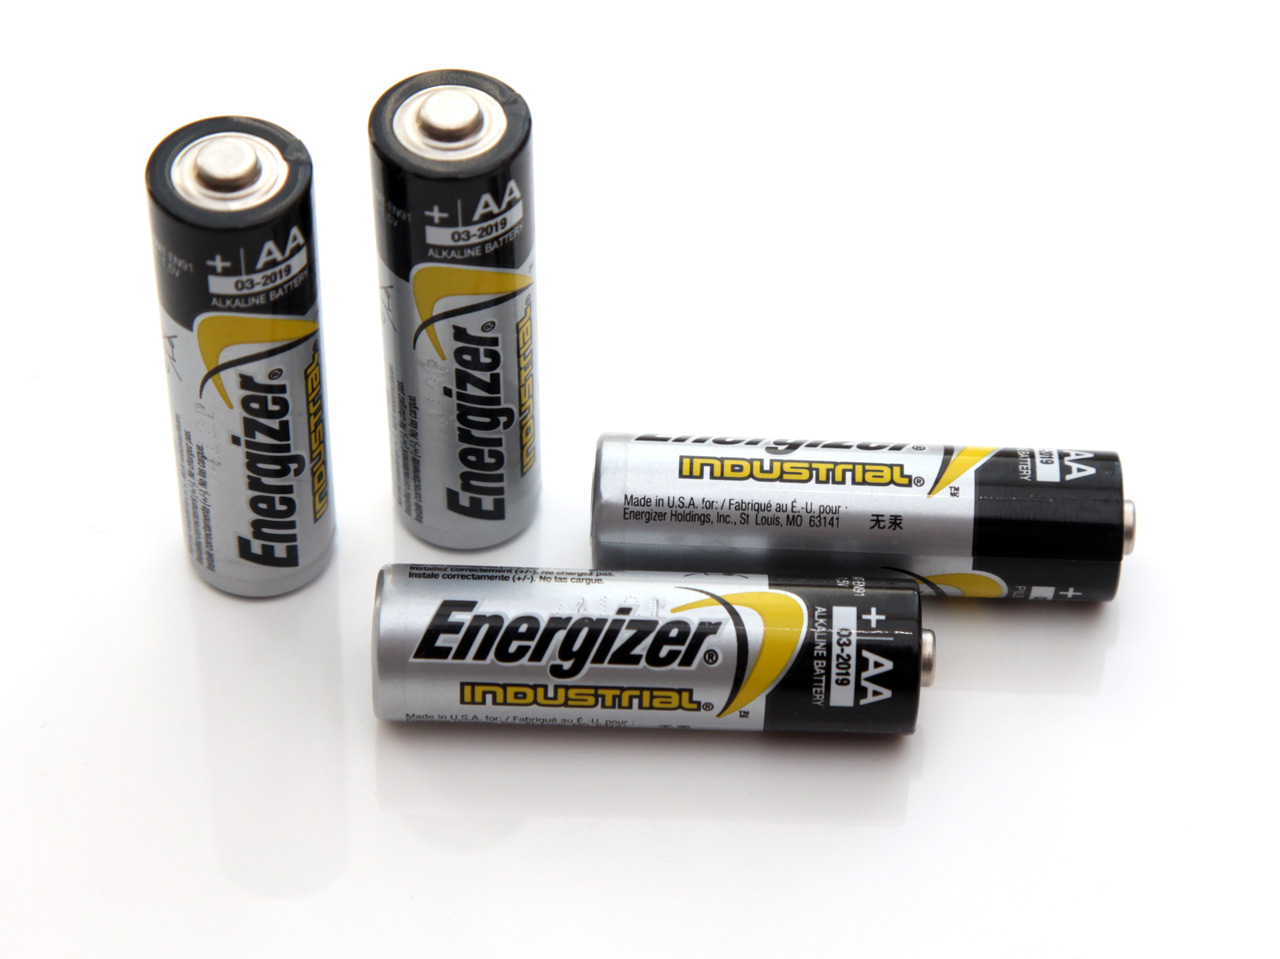 1 5v aa energizer industrial alkaline battery tests. Black Bedroom Furniture Sets. Home Design Ideas